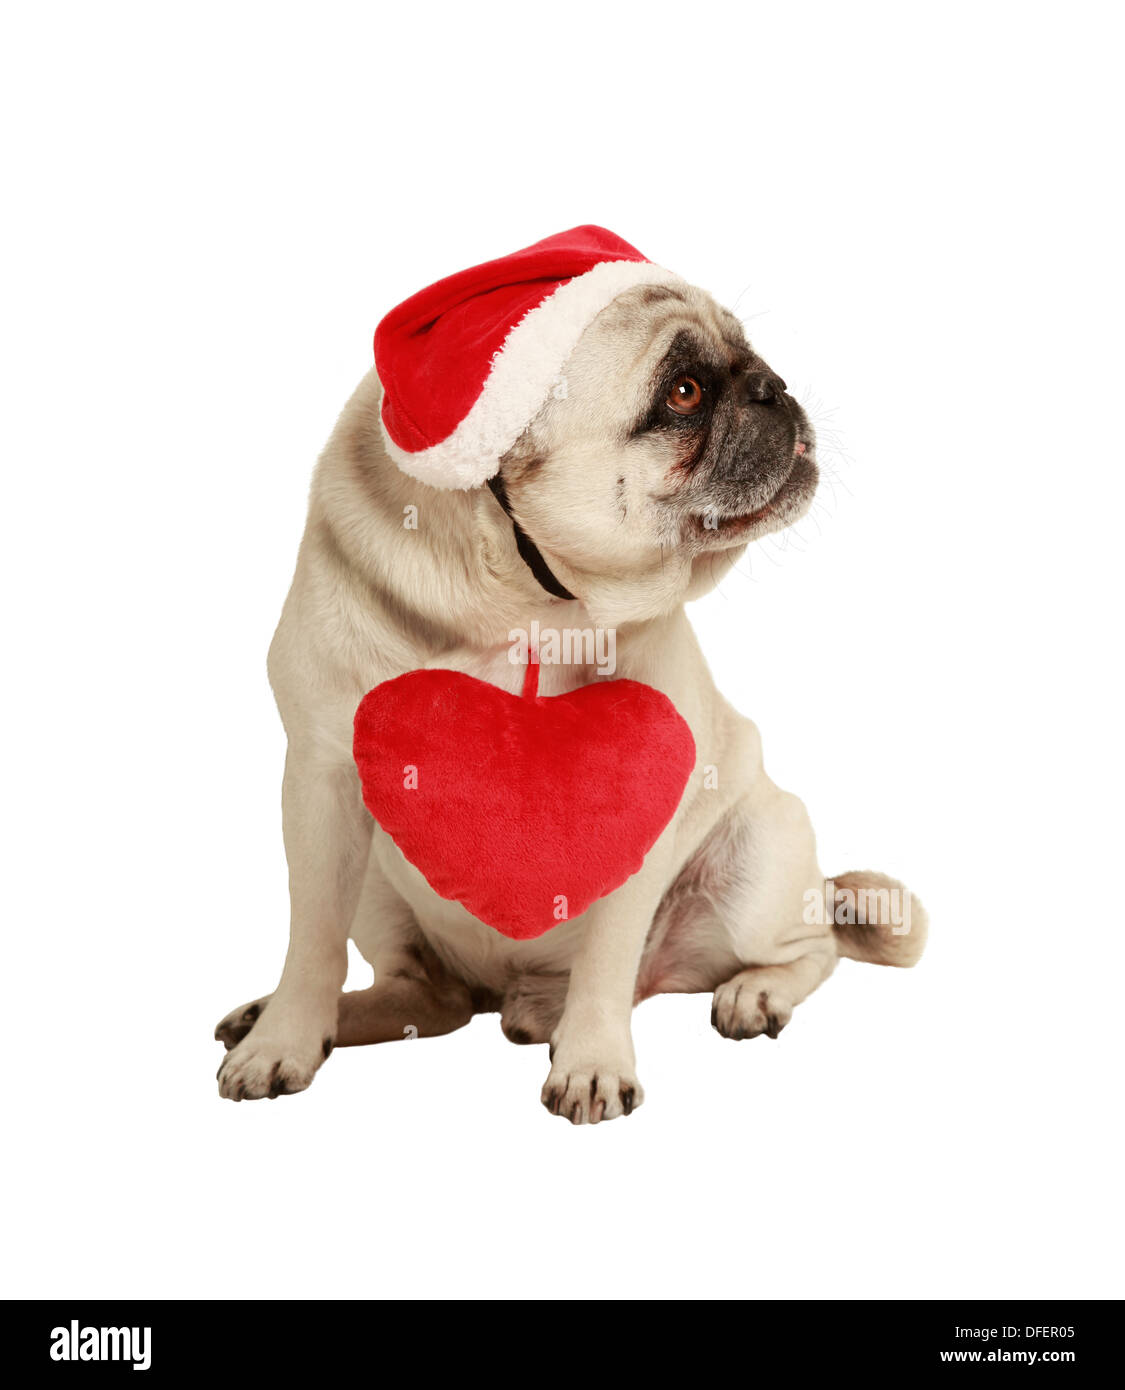 dog with hat and heart, exempted, white background, dressed as Santa Claus, cutout Stock Photo